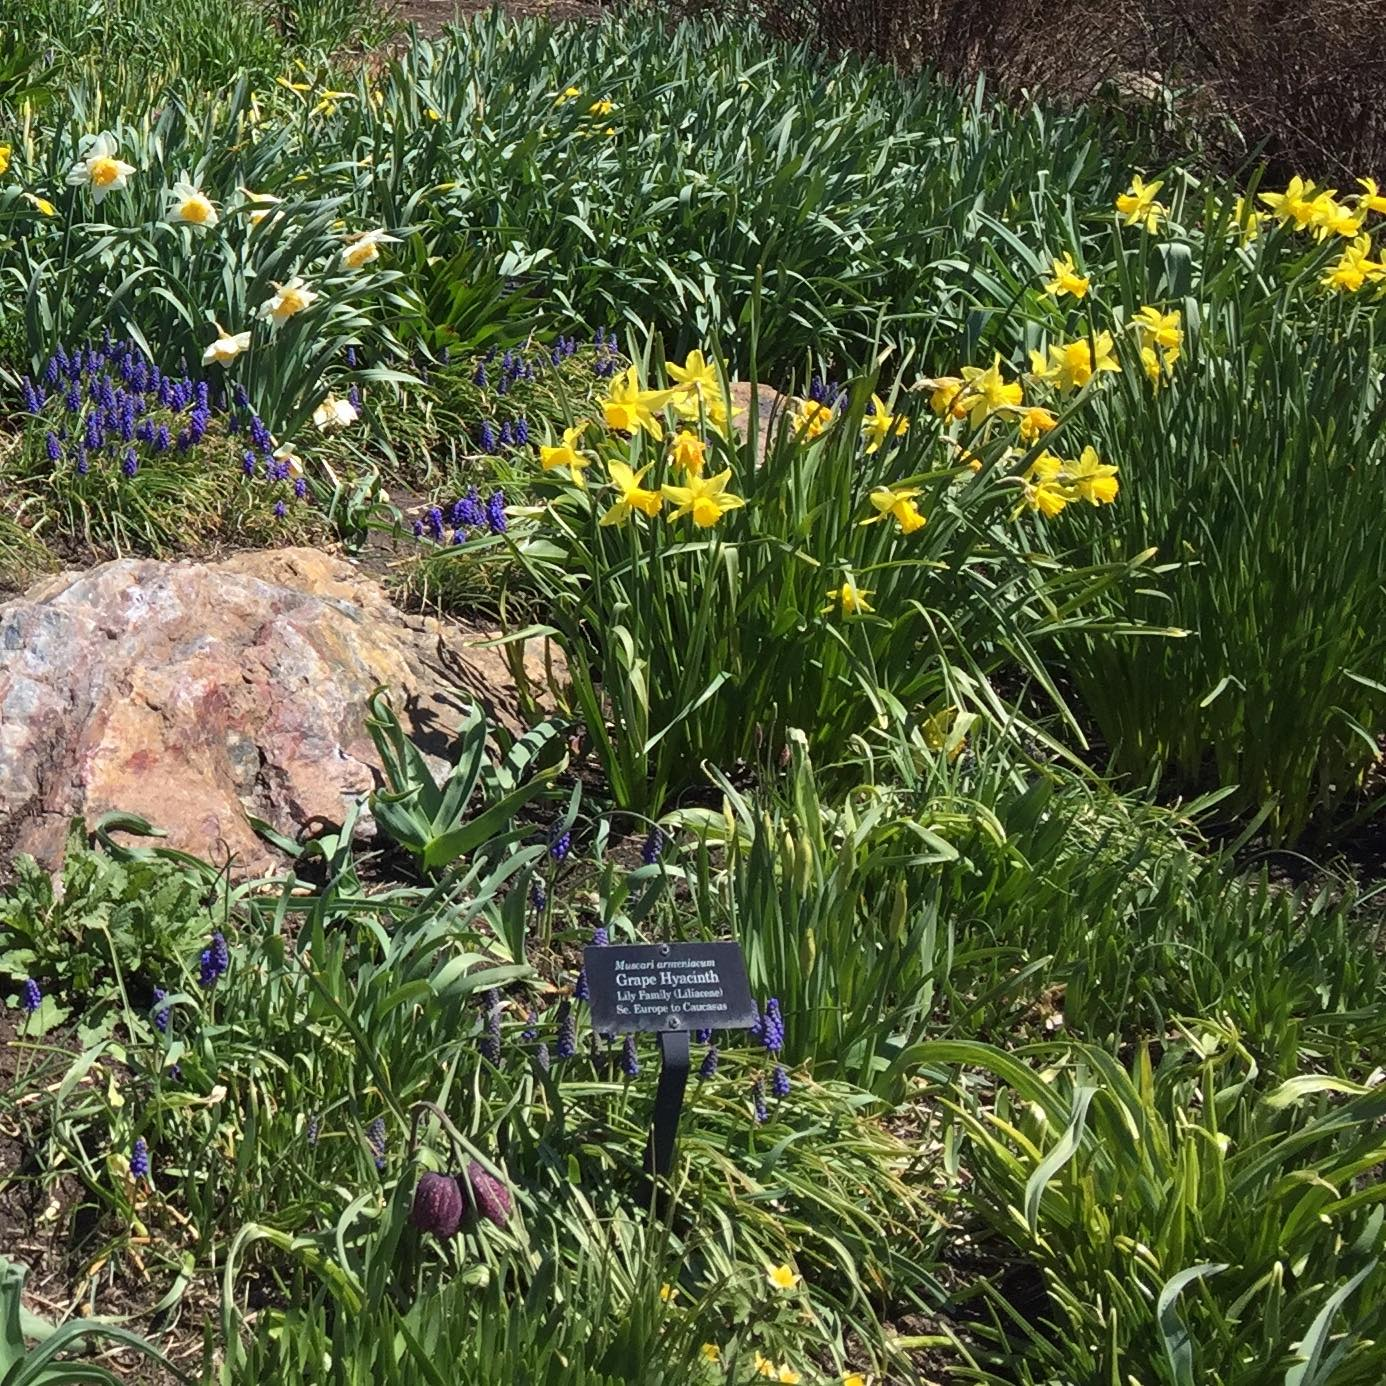 Daffodils and green leaves. Grateful for the signs of Spring.